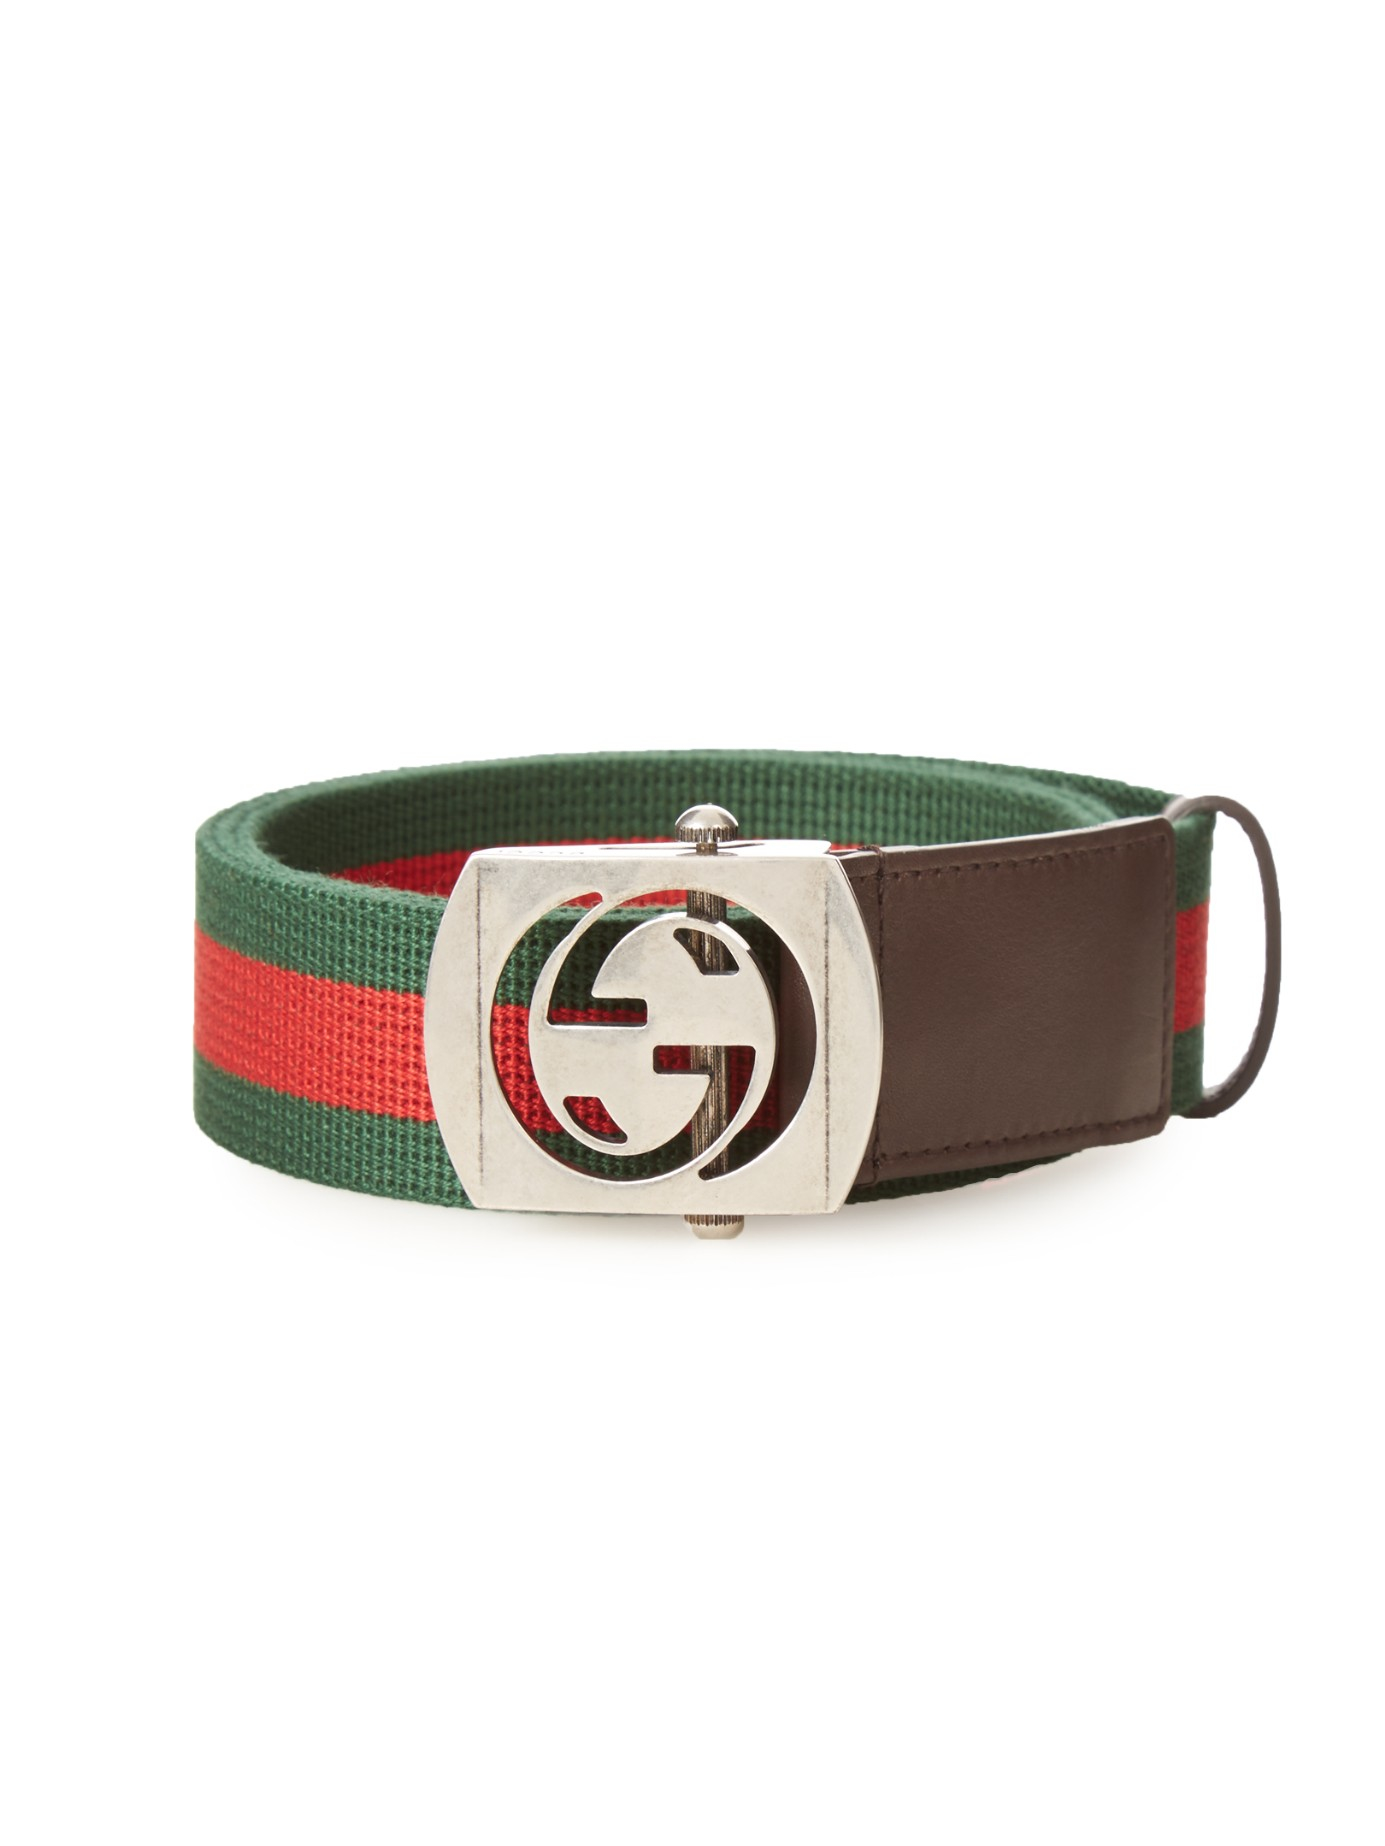 2f1e9ff6ec4 Gucci Gg-buckle Canvas Belt in Green for Men - Lyst